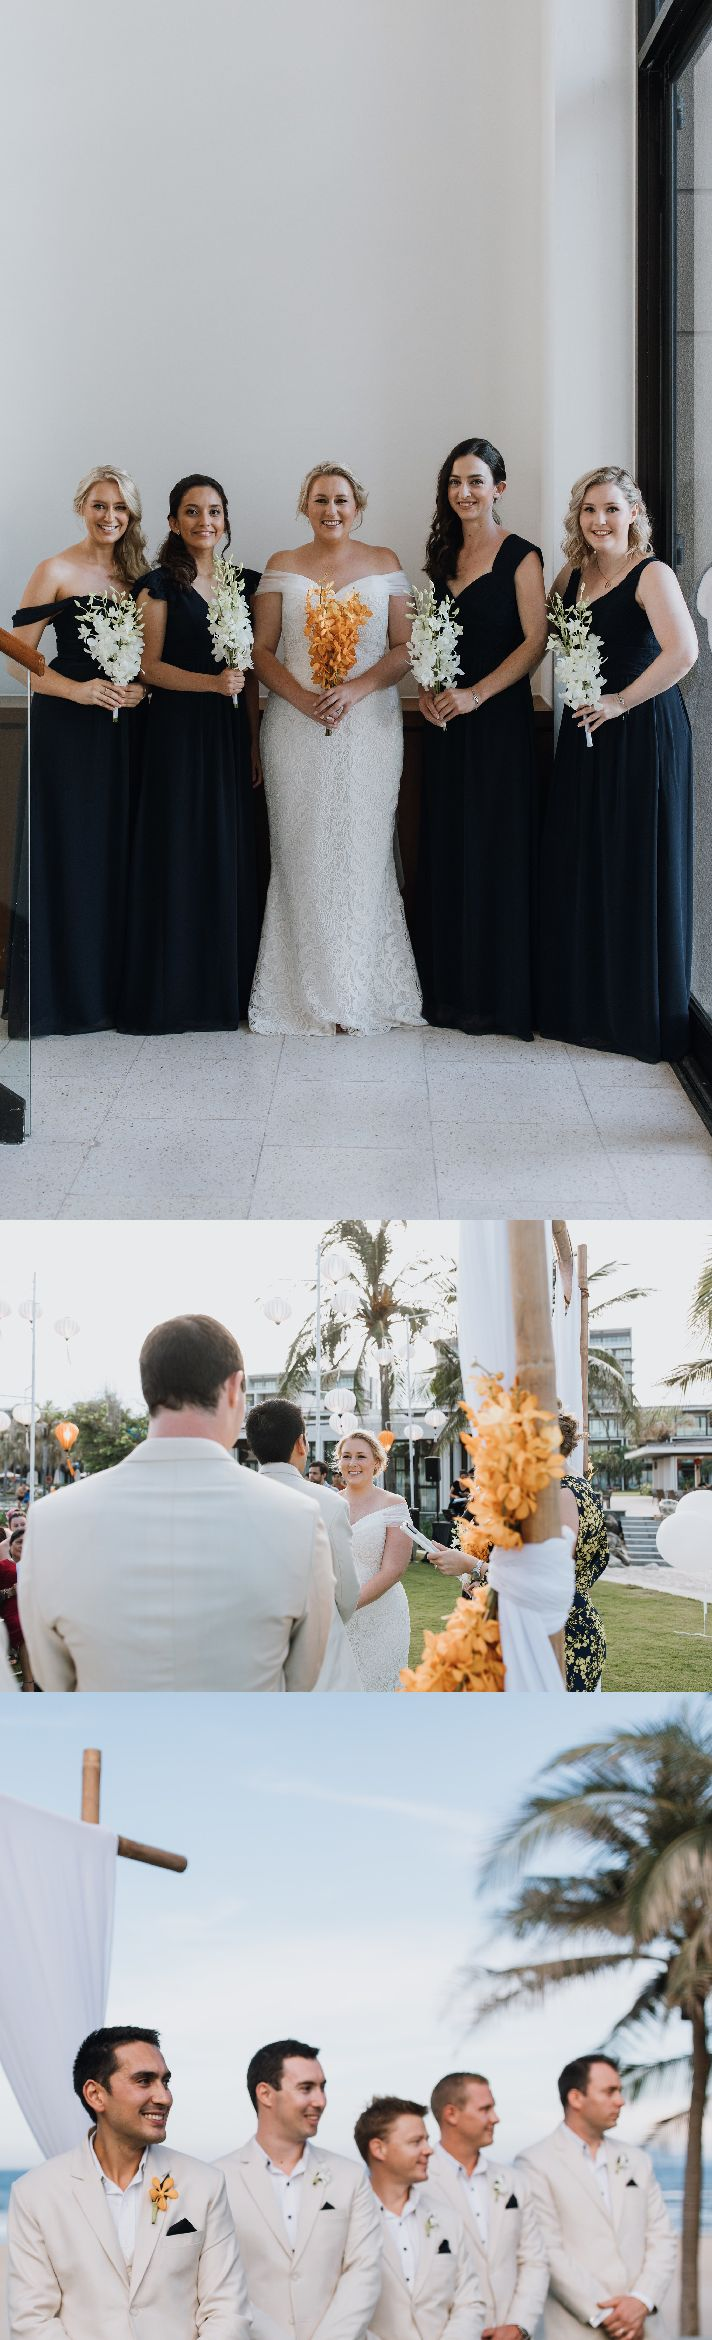 Keeping it simple and elegant by using  tropical orchids in your favourite bold colour#weddingflowers #weddingdesign #vietnambeachweddings #hoianeventsweddings #rusticwedding #beachwedding #destinationwedding photos by the talented @StudioSomething  See the full album: https://studiosomething.pixieset.com/ketrahrob/may11/